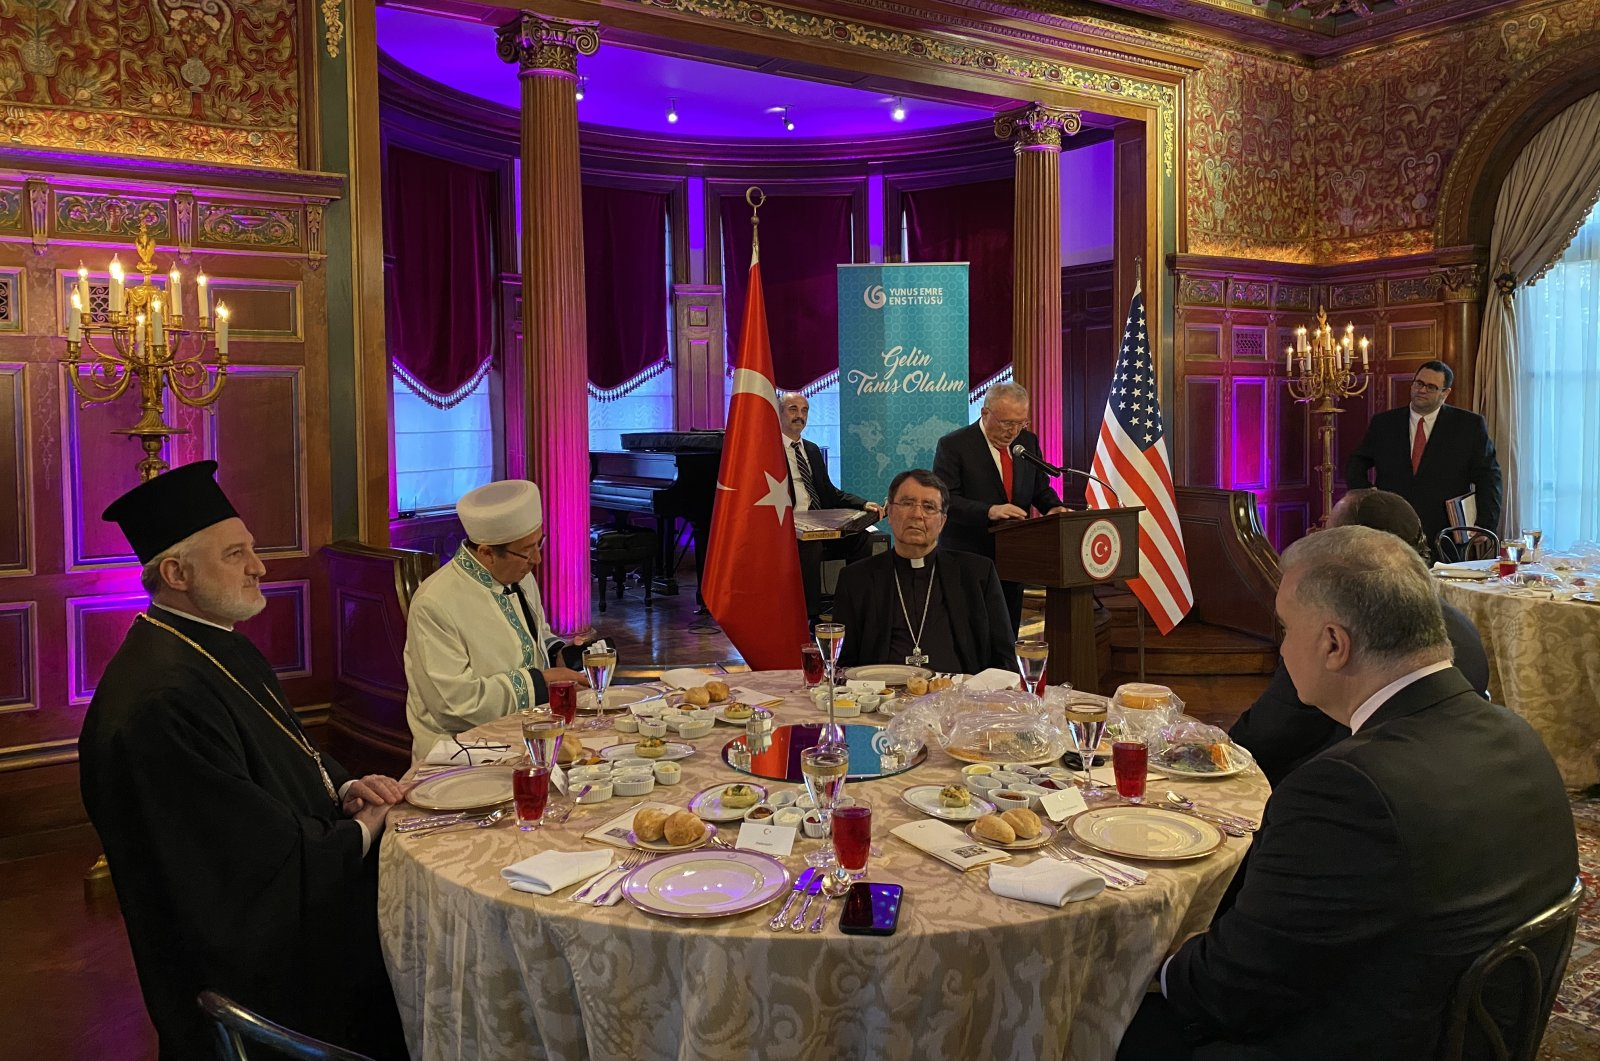 Representatives of religious communities attend the iftar dinner hosted by Turkey's ambassador Hasan Murat Mercan in Washington, U.S., May 4, 2021. (AA Photo)